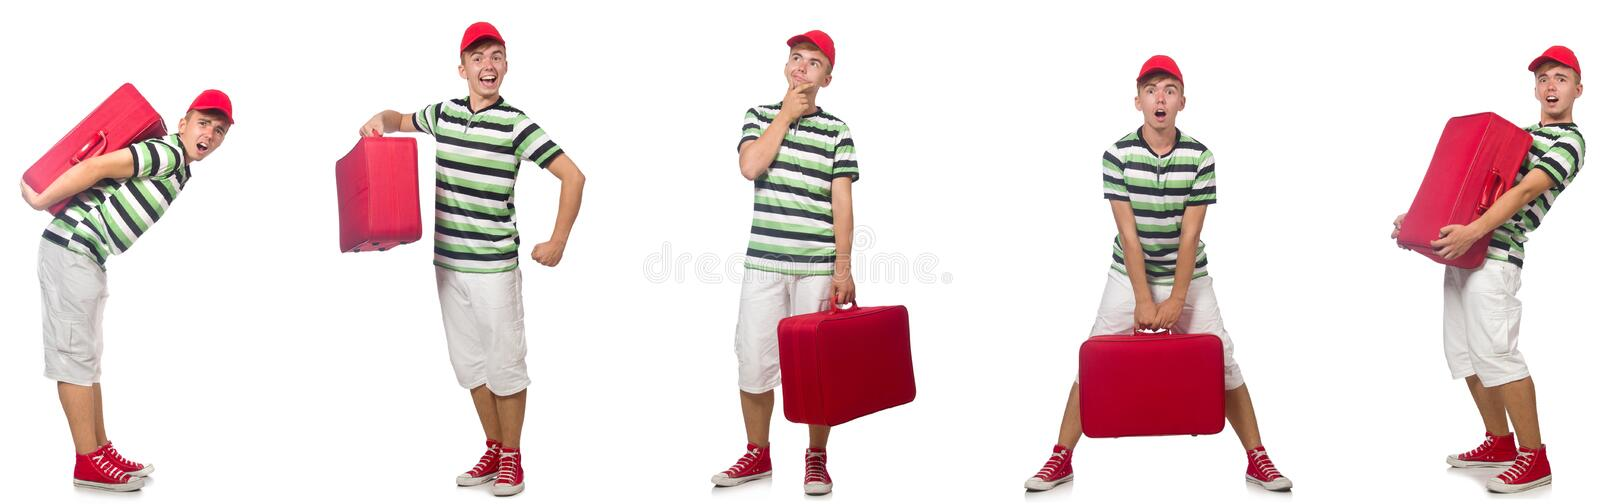 The young man with red suitcase isolated on white stock photography